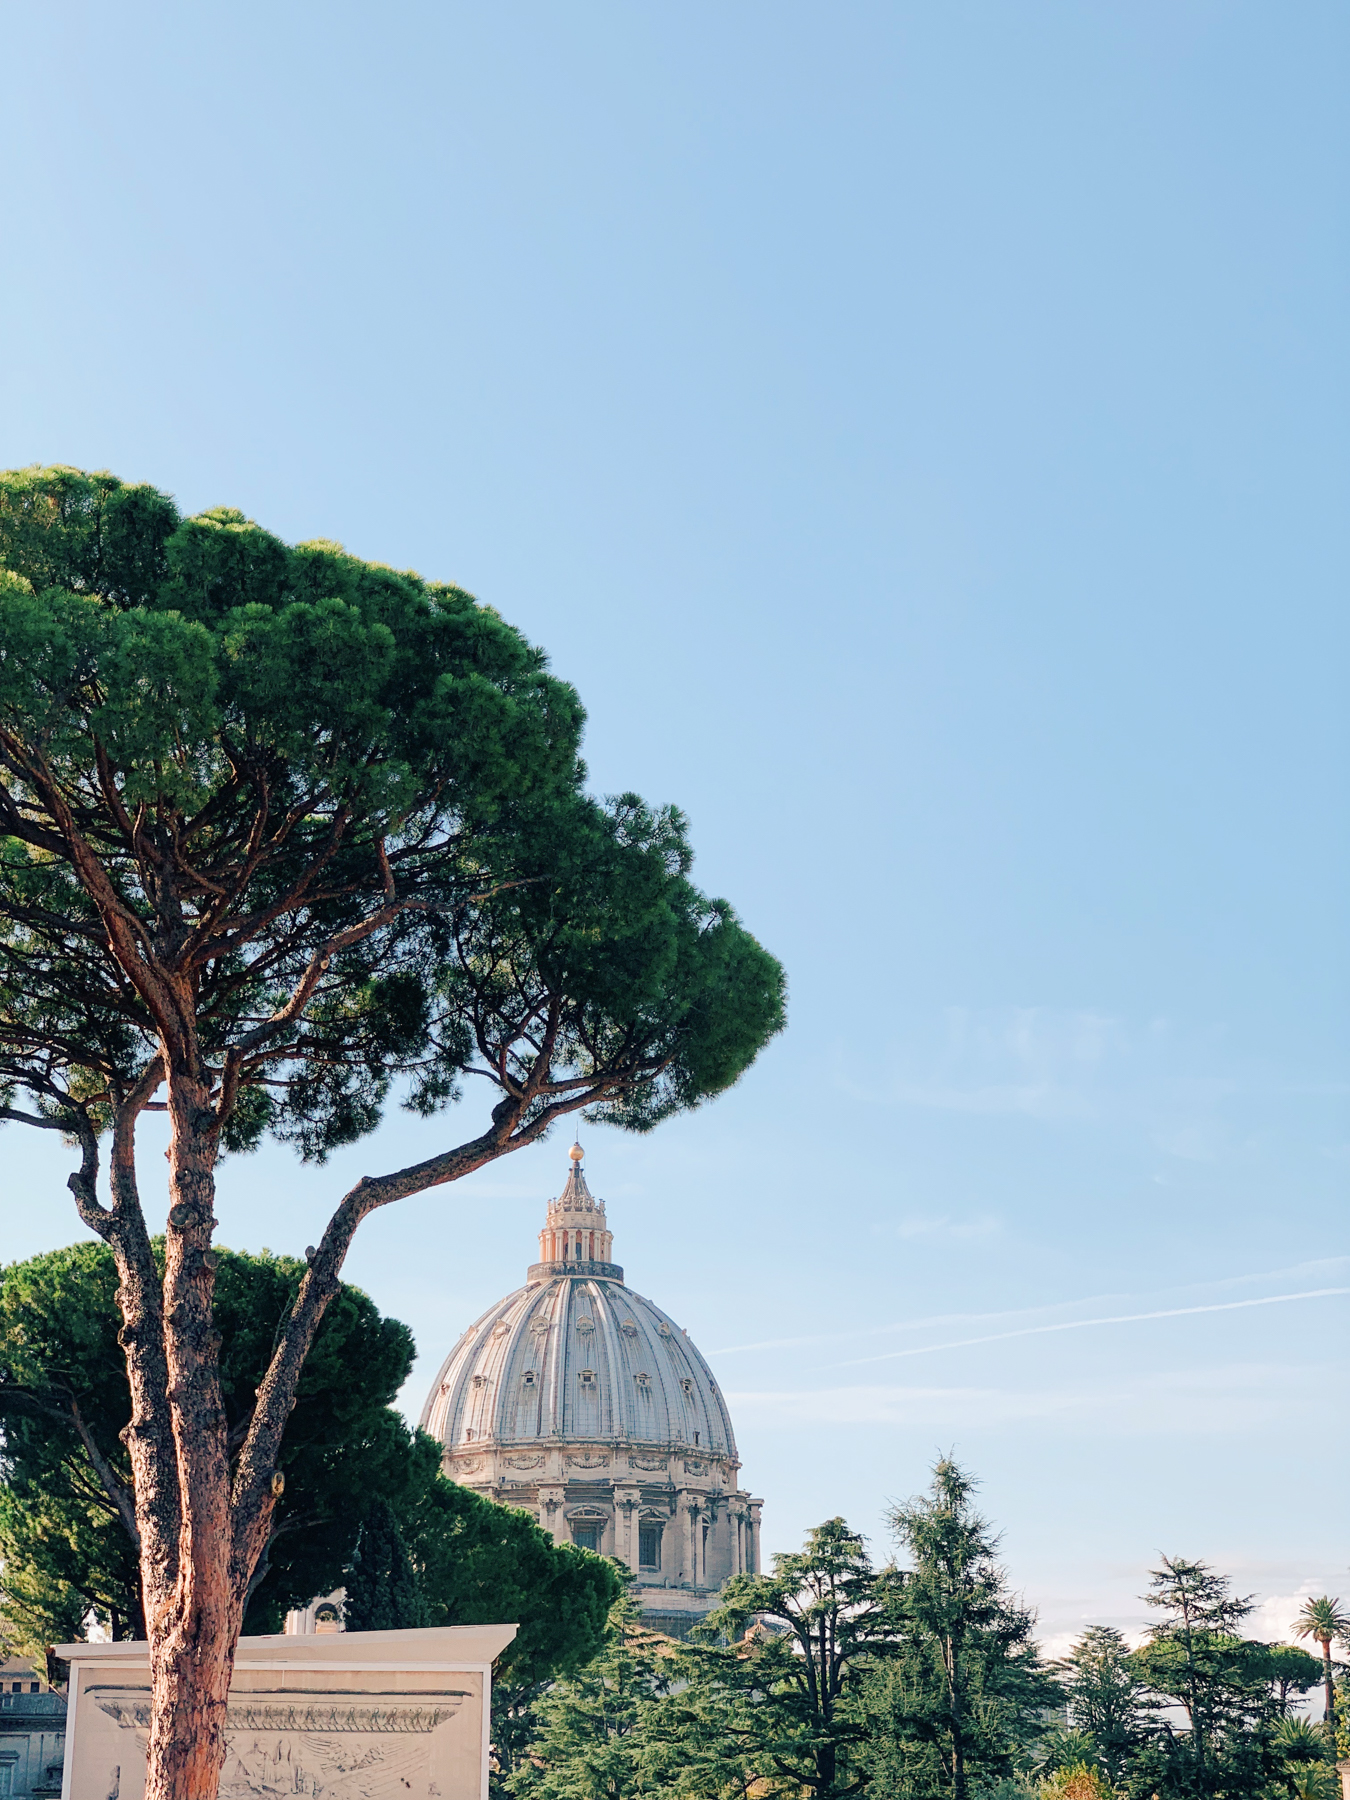 A view of St. Peter's Basilica from the Vatican Museum.